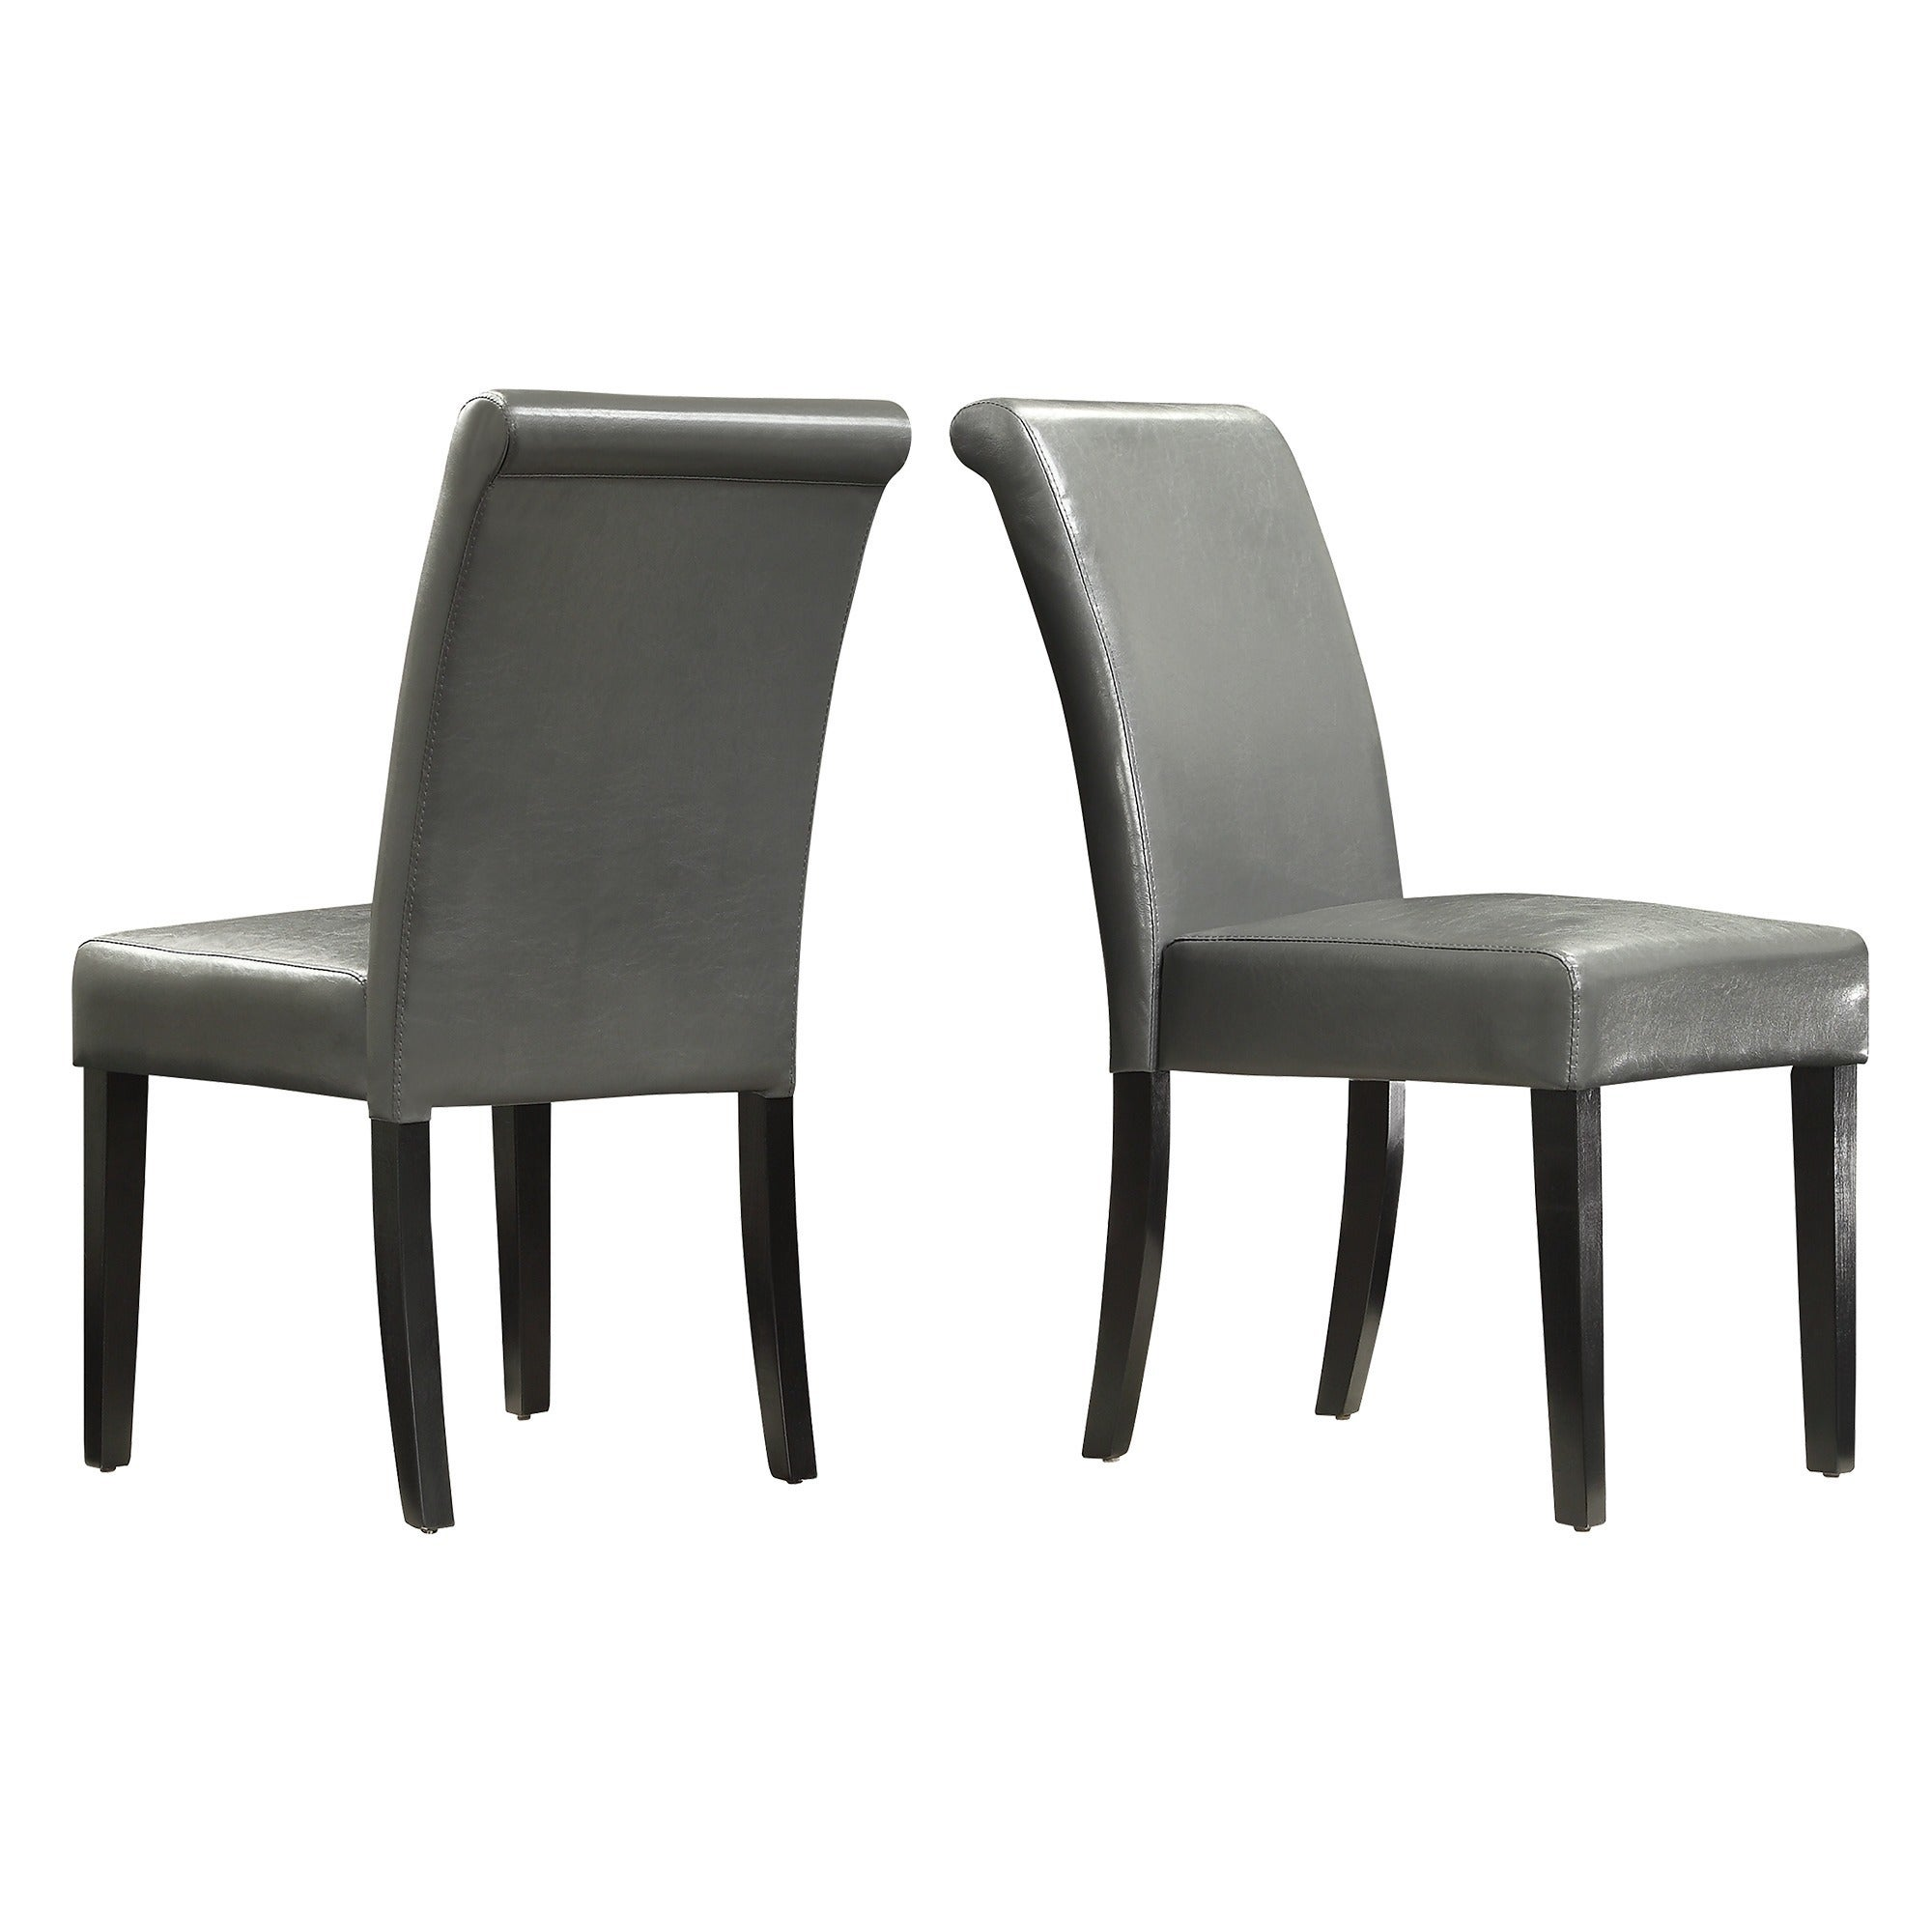 Dorian Faux Leather Upholstered Dining Chair (Set of 2) by iNSPIRE Q Bold -  Free Shipping Today - Overstock.com - 12118821